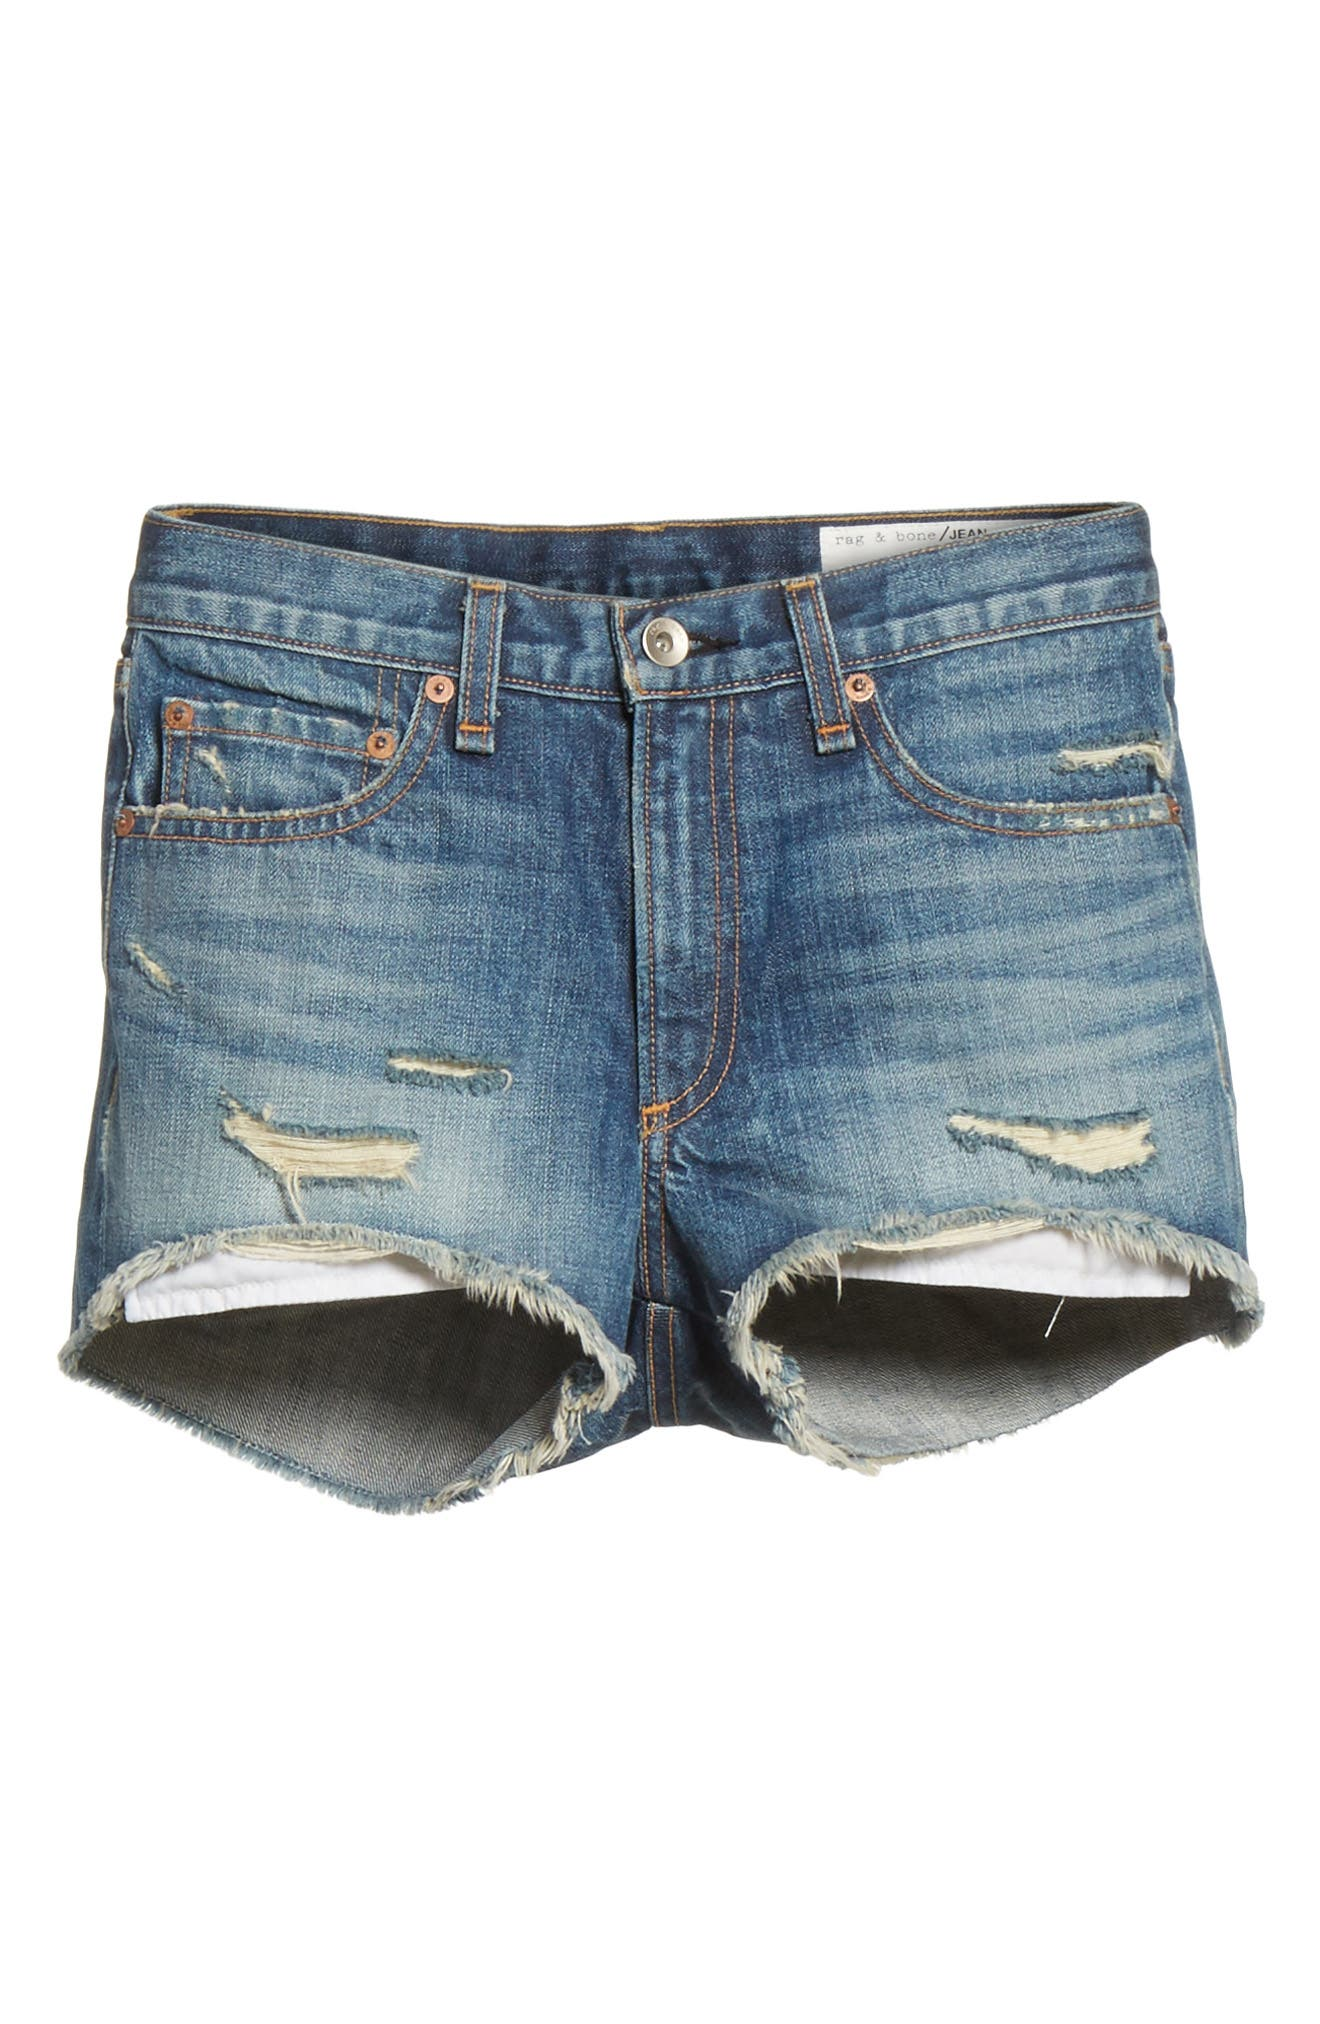 Margaux High Waist Denim Shorts,                             Alternate thumbnail 6, color,                             Rocka Rolla